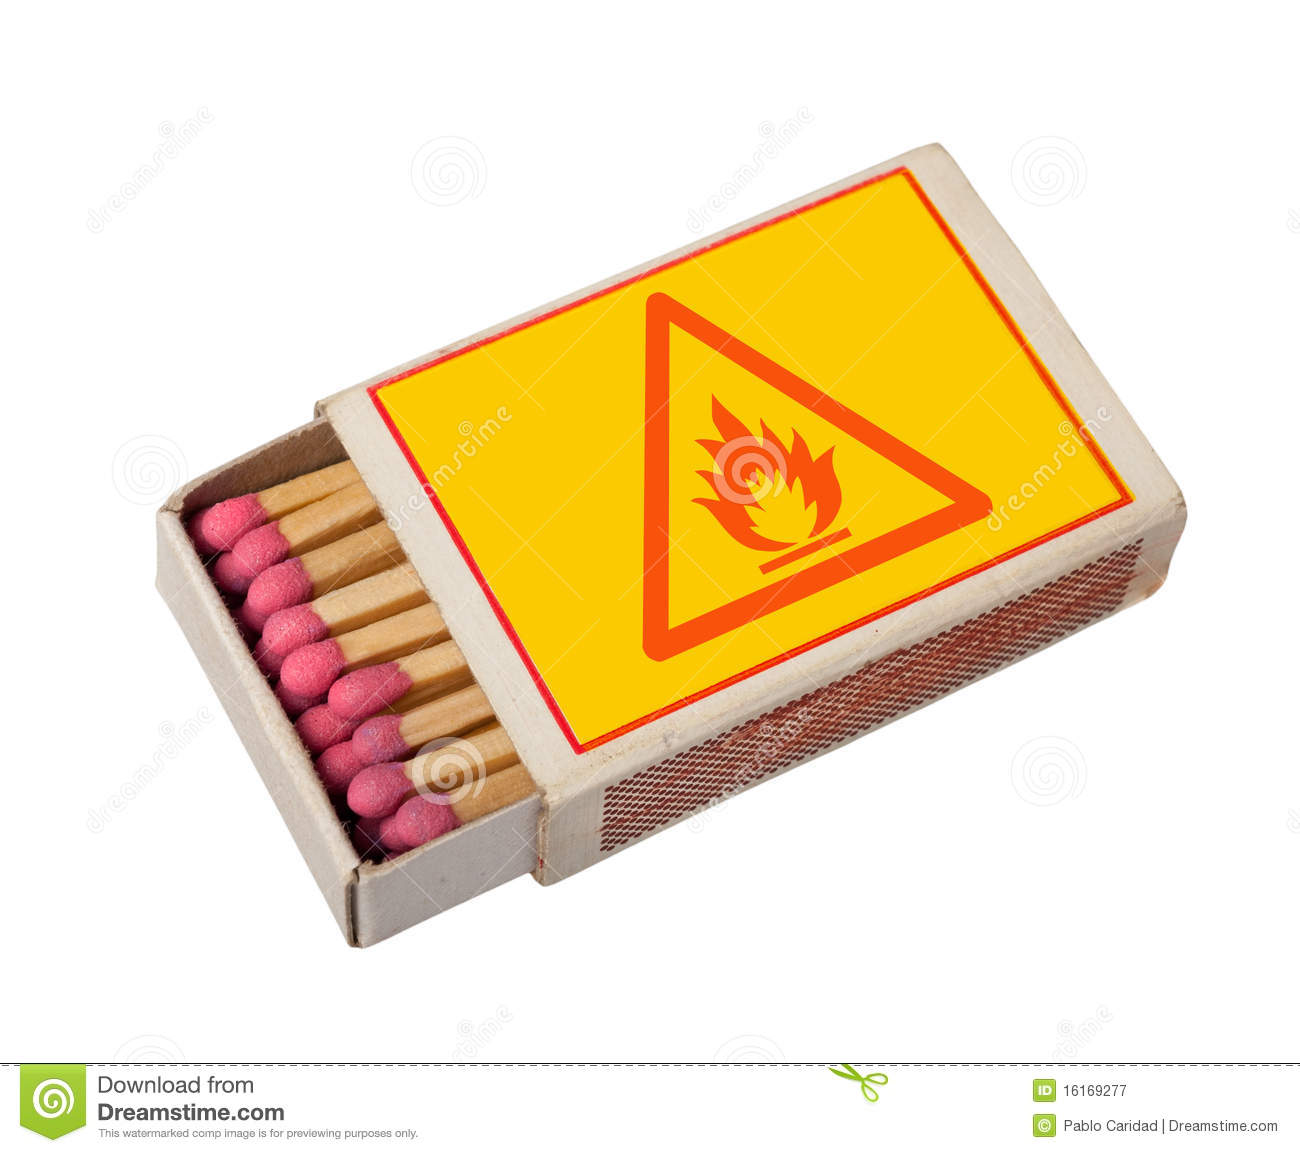 Matchbox isolated with hazard sign.